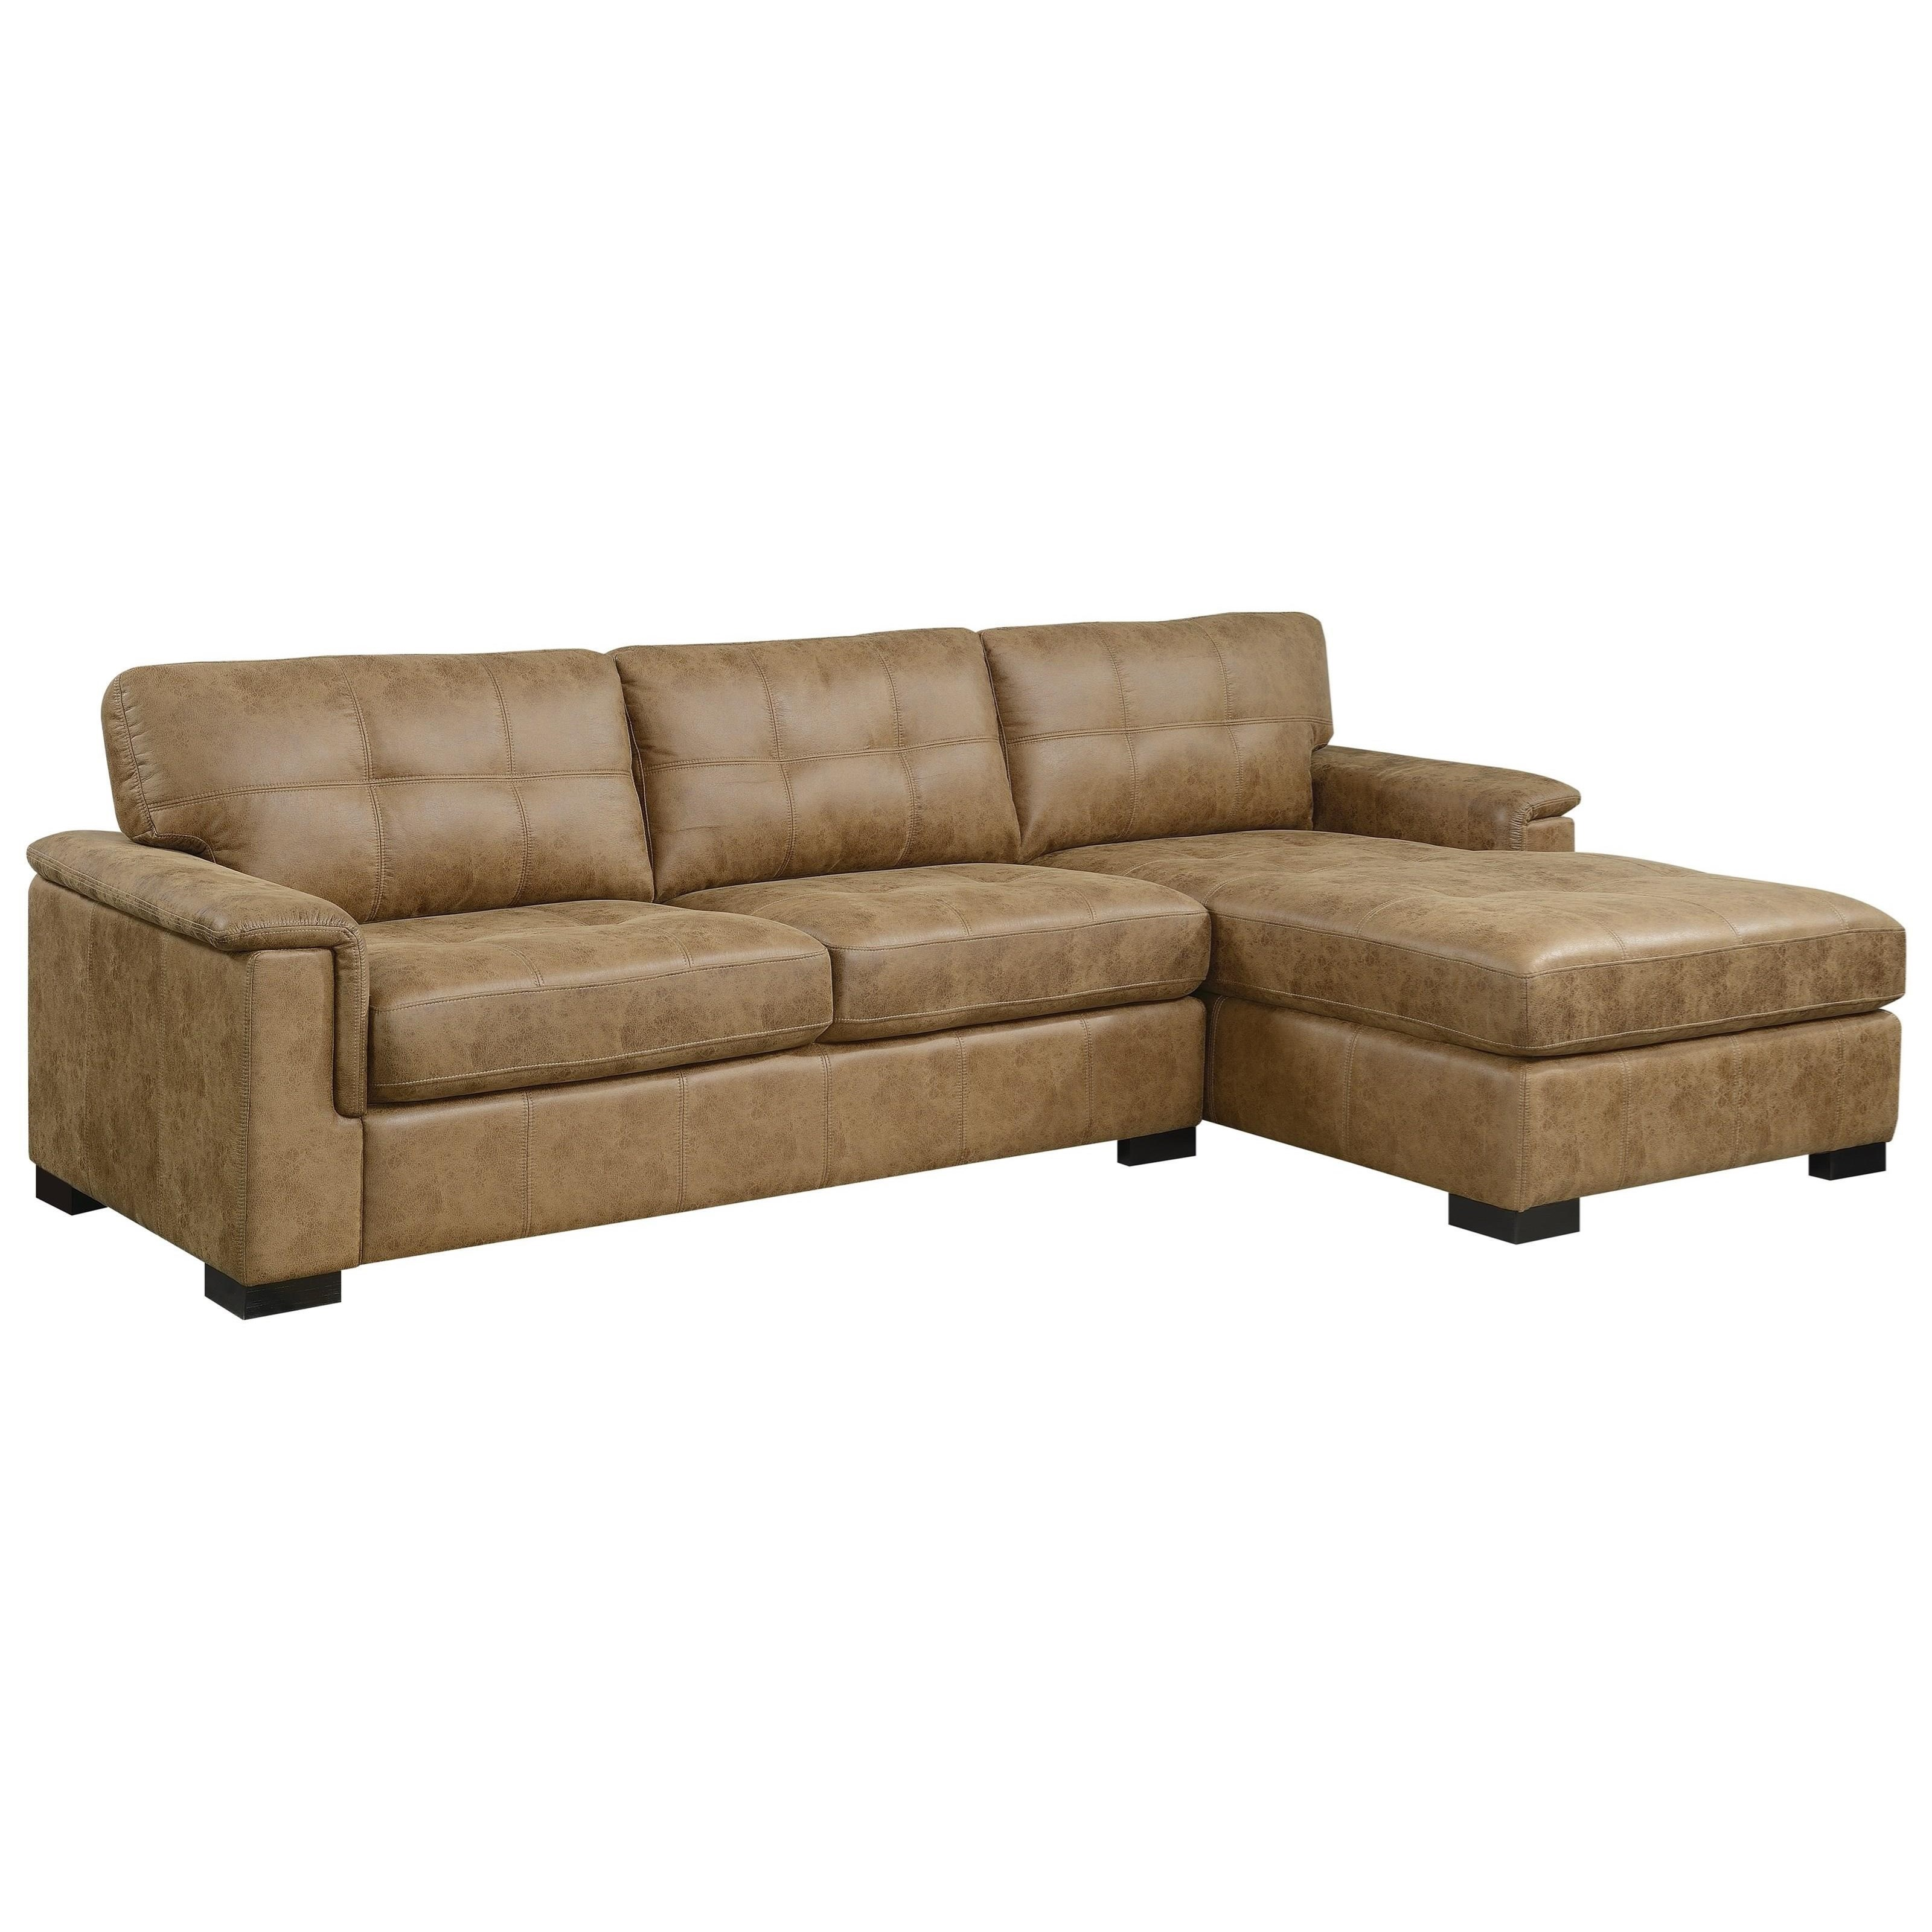 Abbott Sectional Sofa with Chaise by Emerald at Northeast Factory Direct